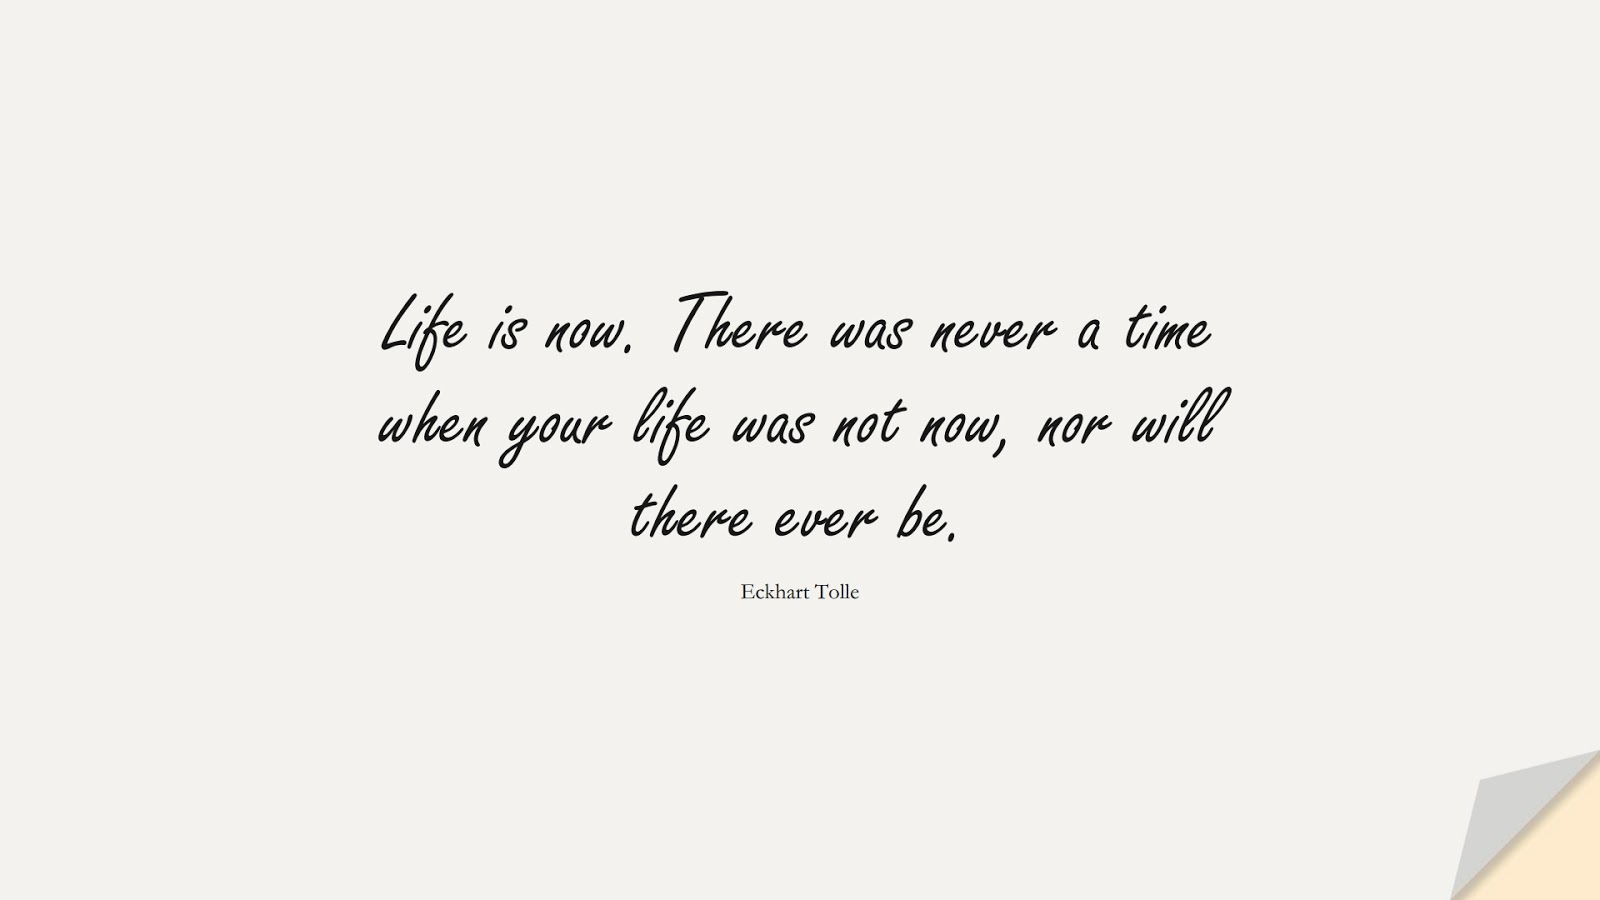 Life is now. There was never a time when your life was not now, nor will there ever be. (Eckhart Tolle);  #ShortQuotes